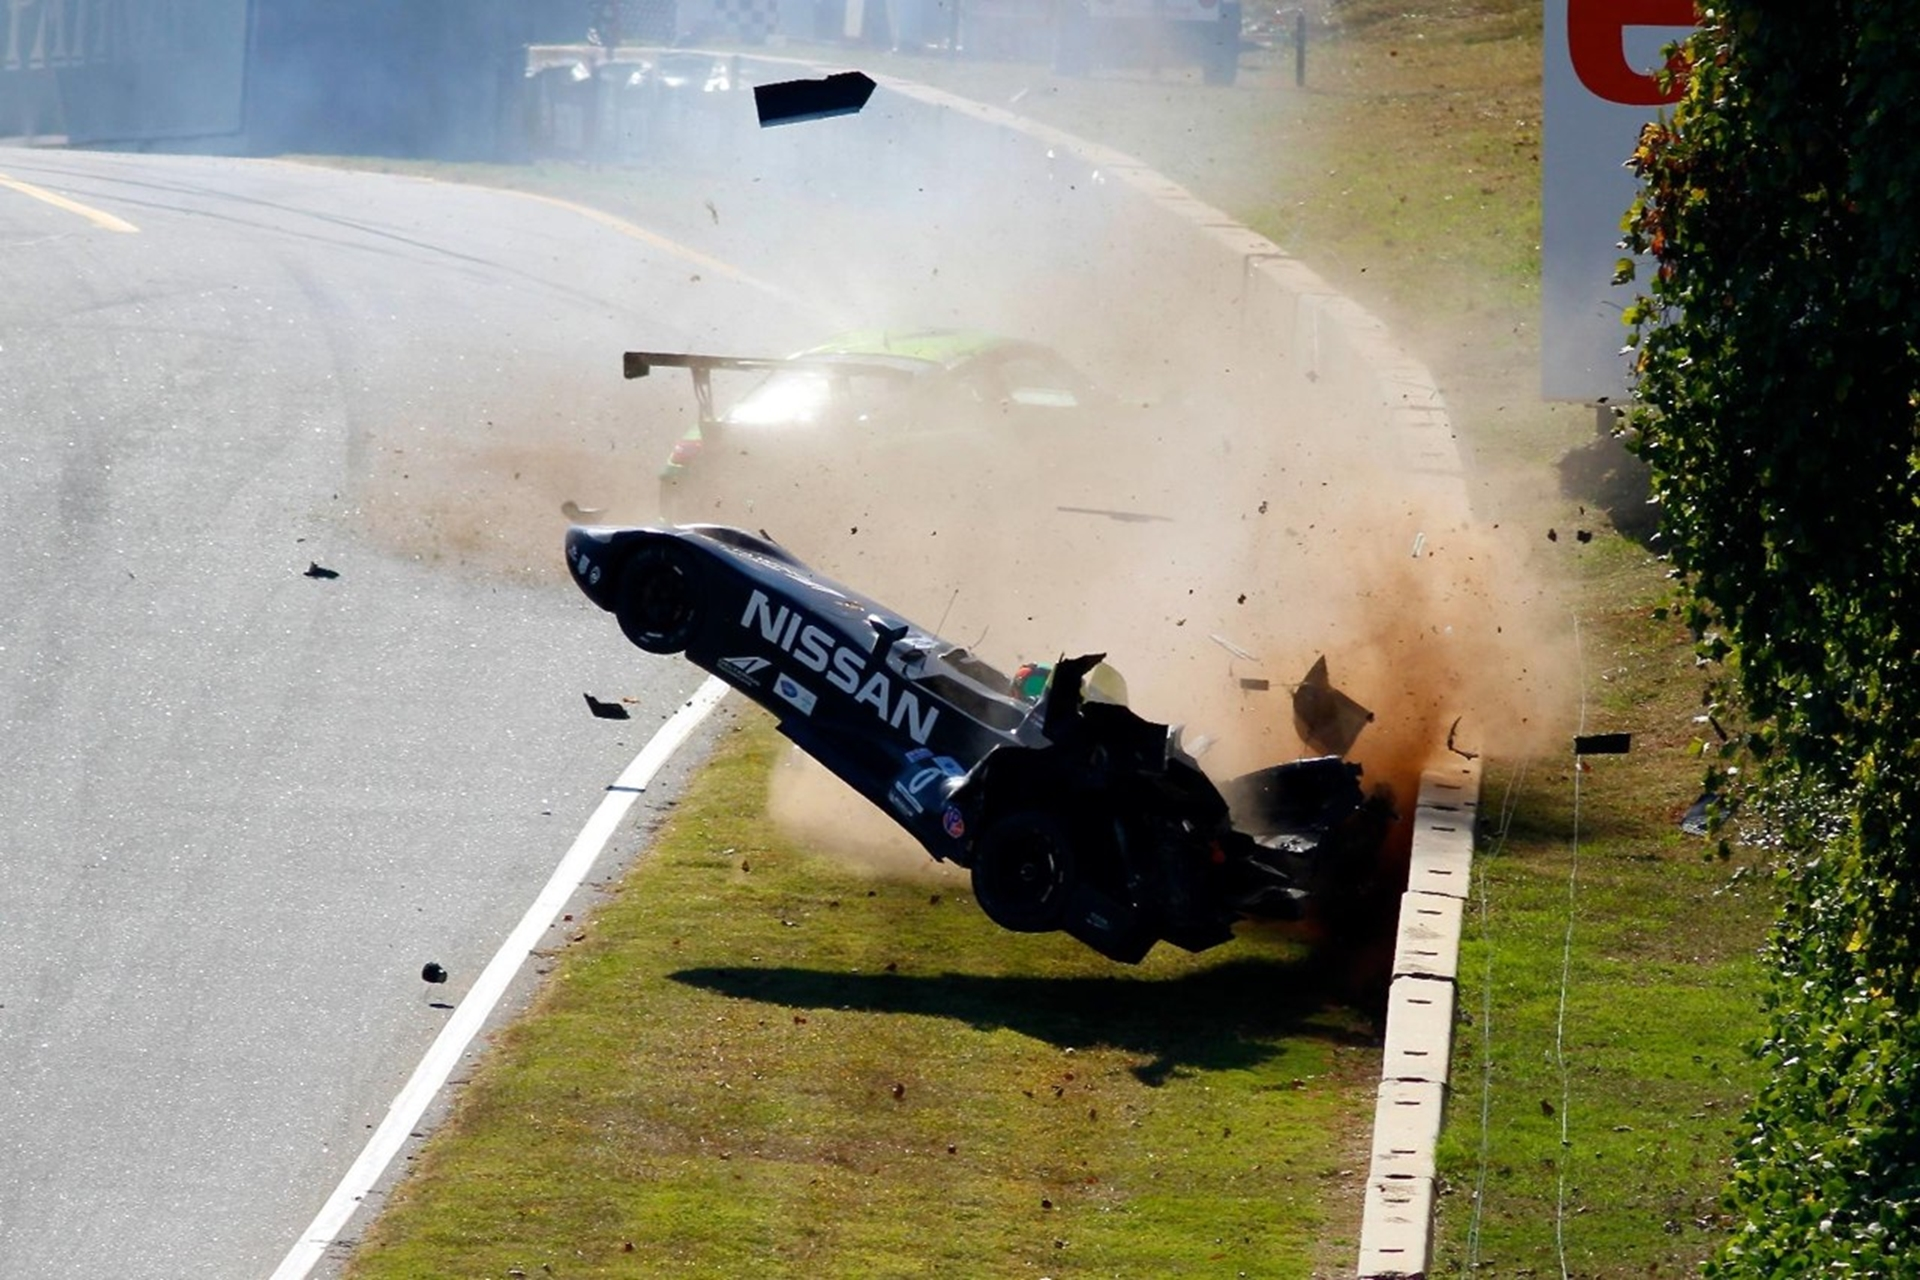 Nissan Deltawing Crash 2012